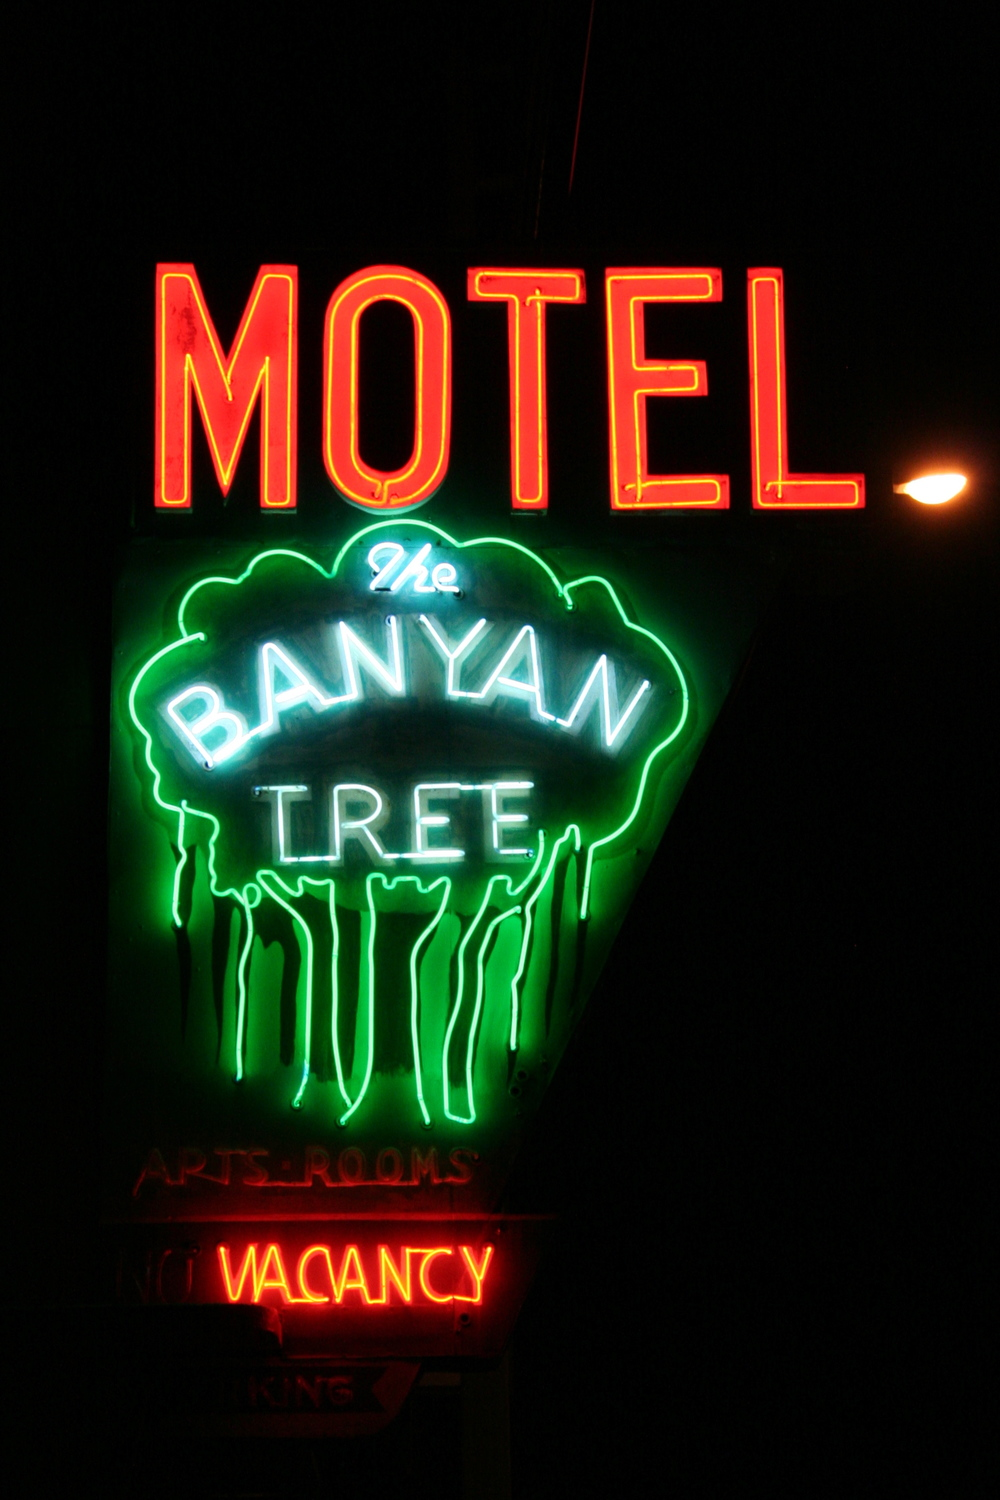 Banyan Tree Motel.jpg